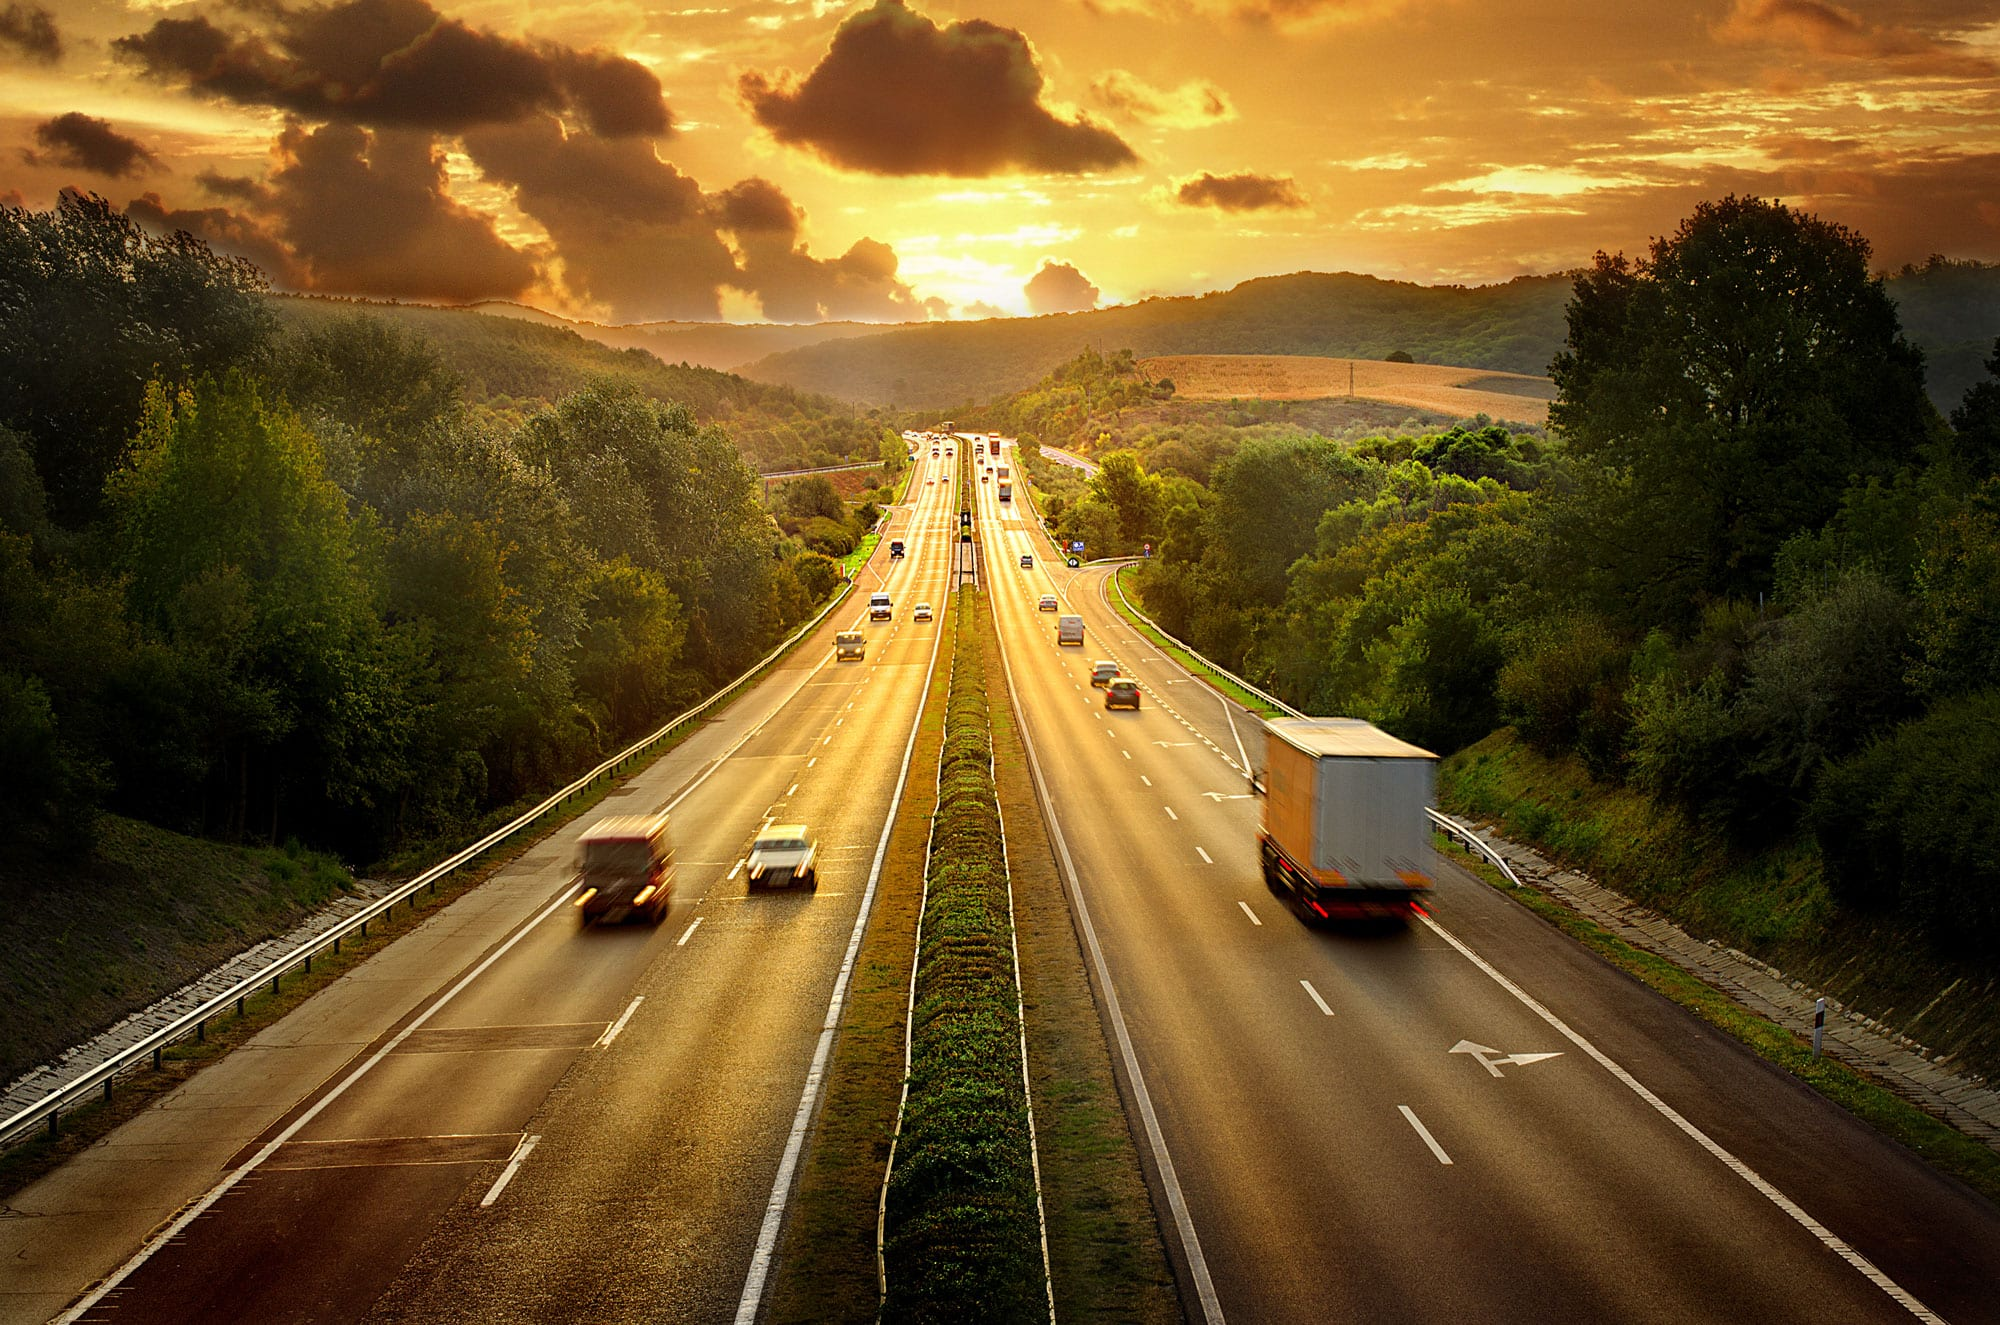 international road forwarding dta international road forwarding is one of the key elements of dta offer we provide ftl and ltl services in european union and to cis destinations